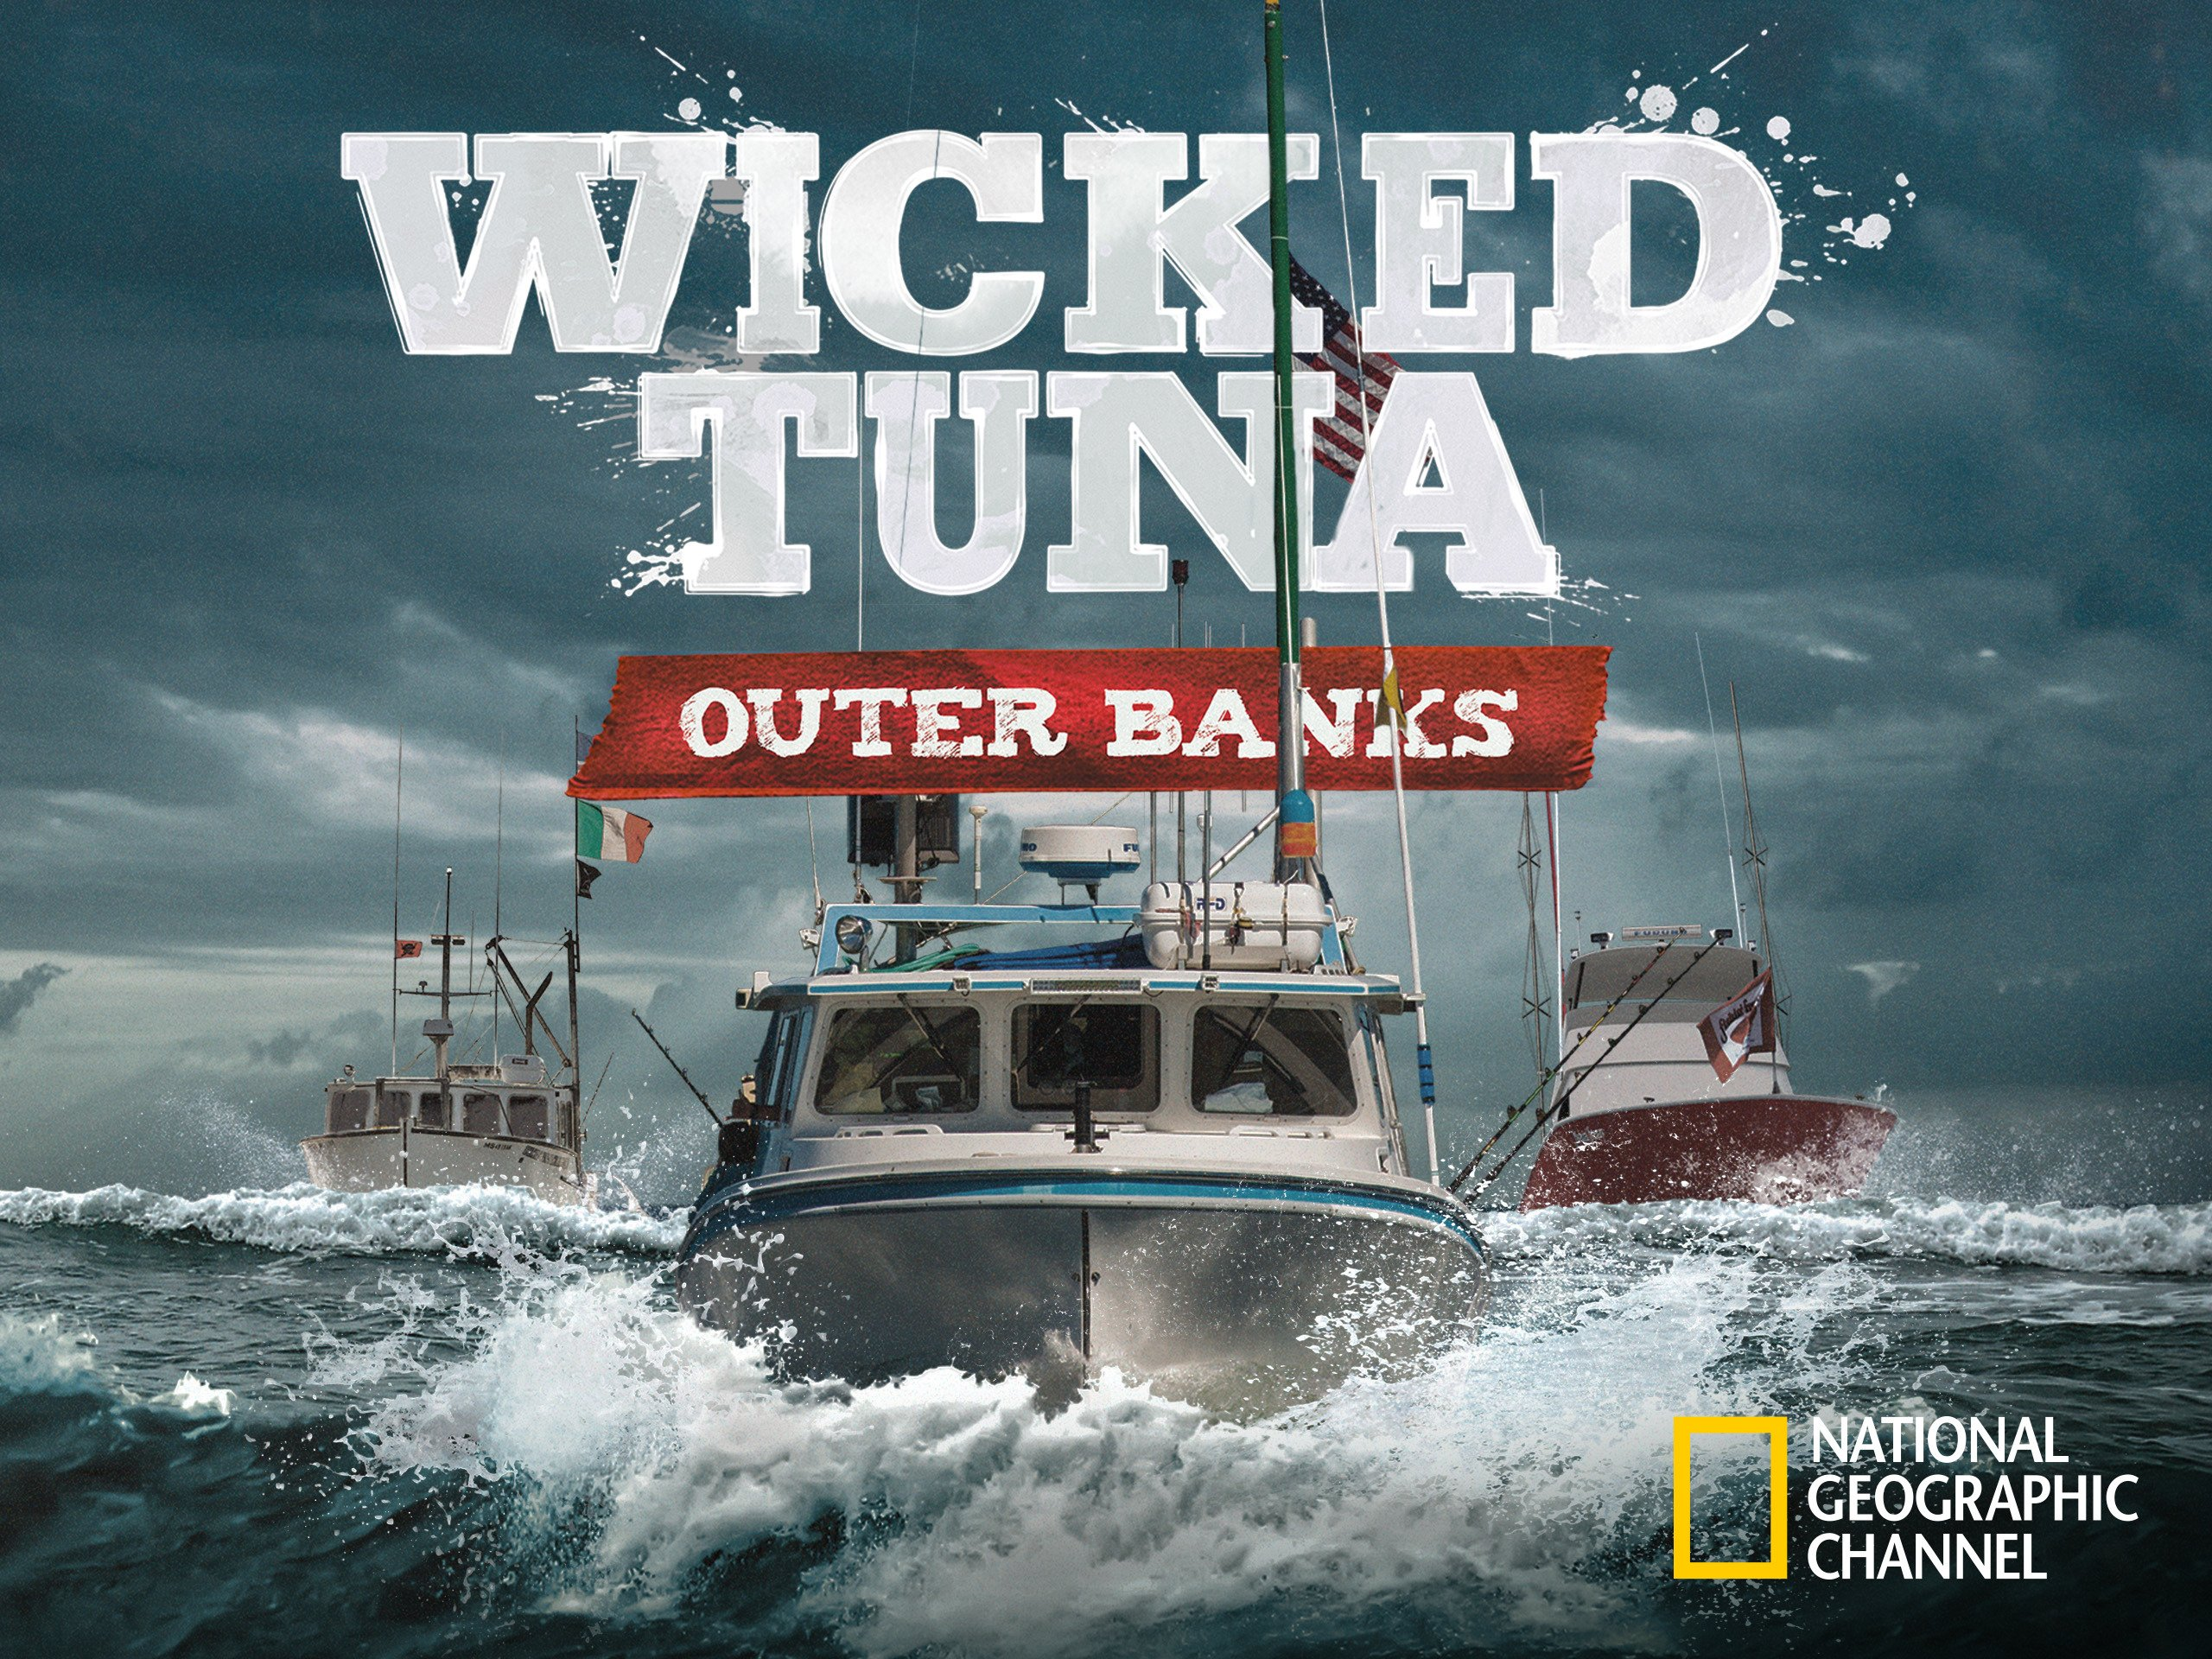 Outer Banks Fish Wicked Tuna Live Swell